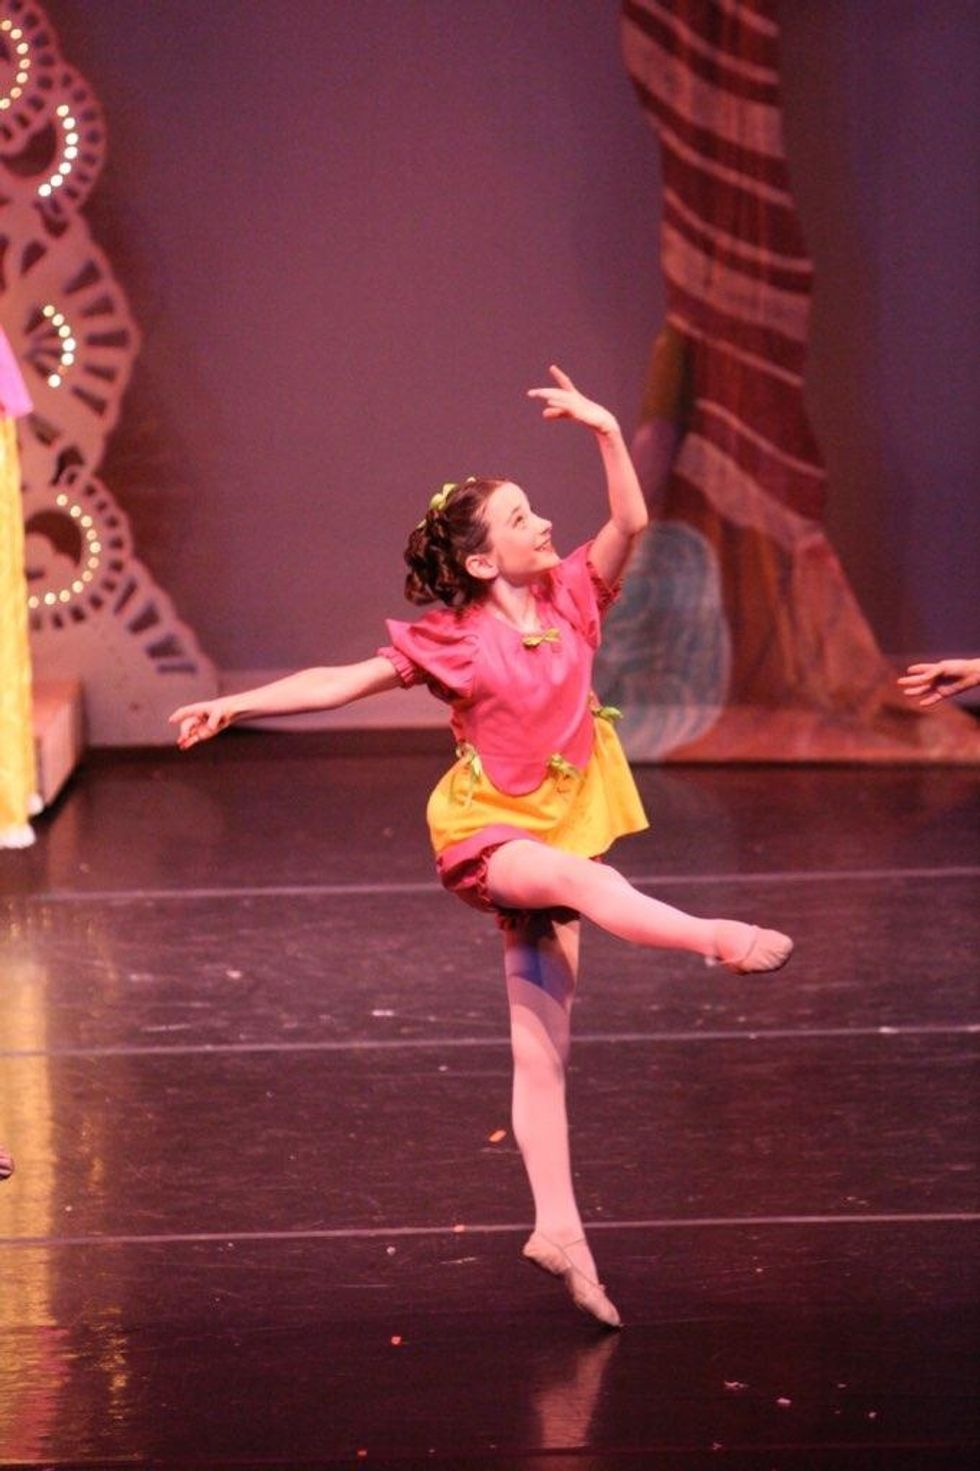 A young girl jumps lightly off one leg during an onstage performance, wearing a bright pink and yellow costume and tights.